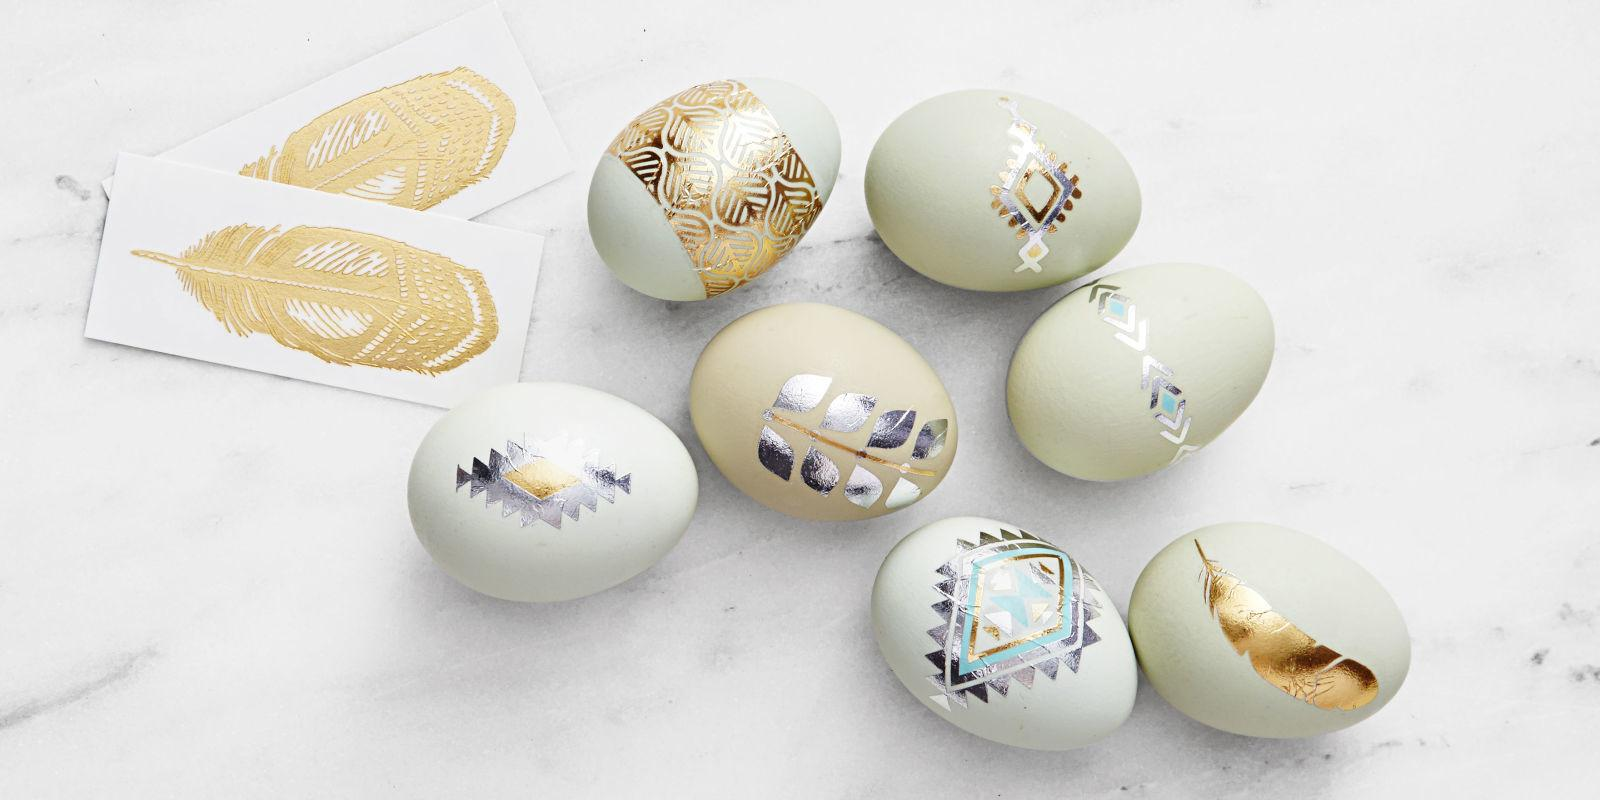 Best Easter Egg Designs Easy Diy Ideas